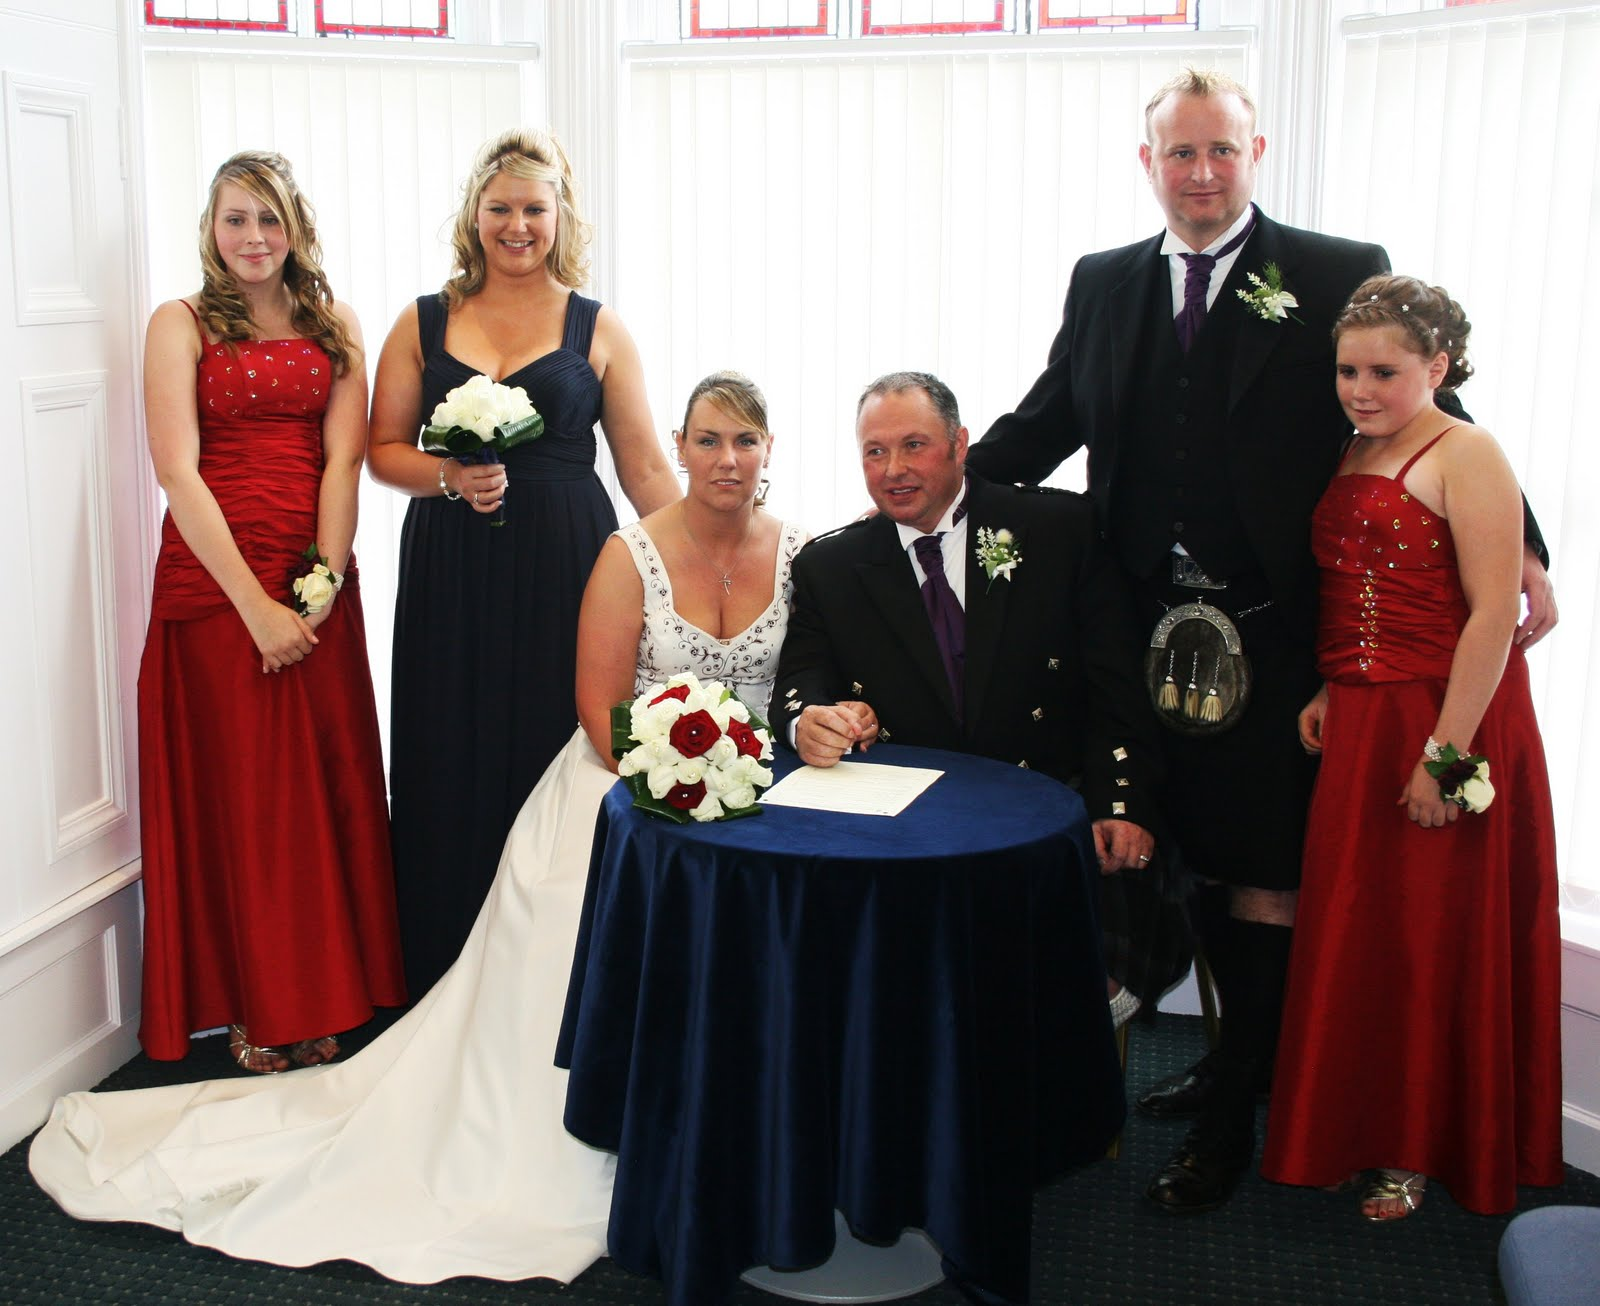 Wedding Vows For Colin And Nicola